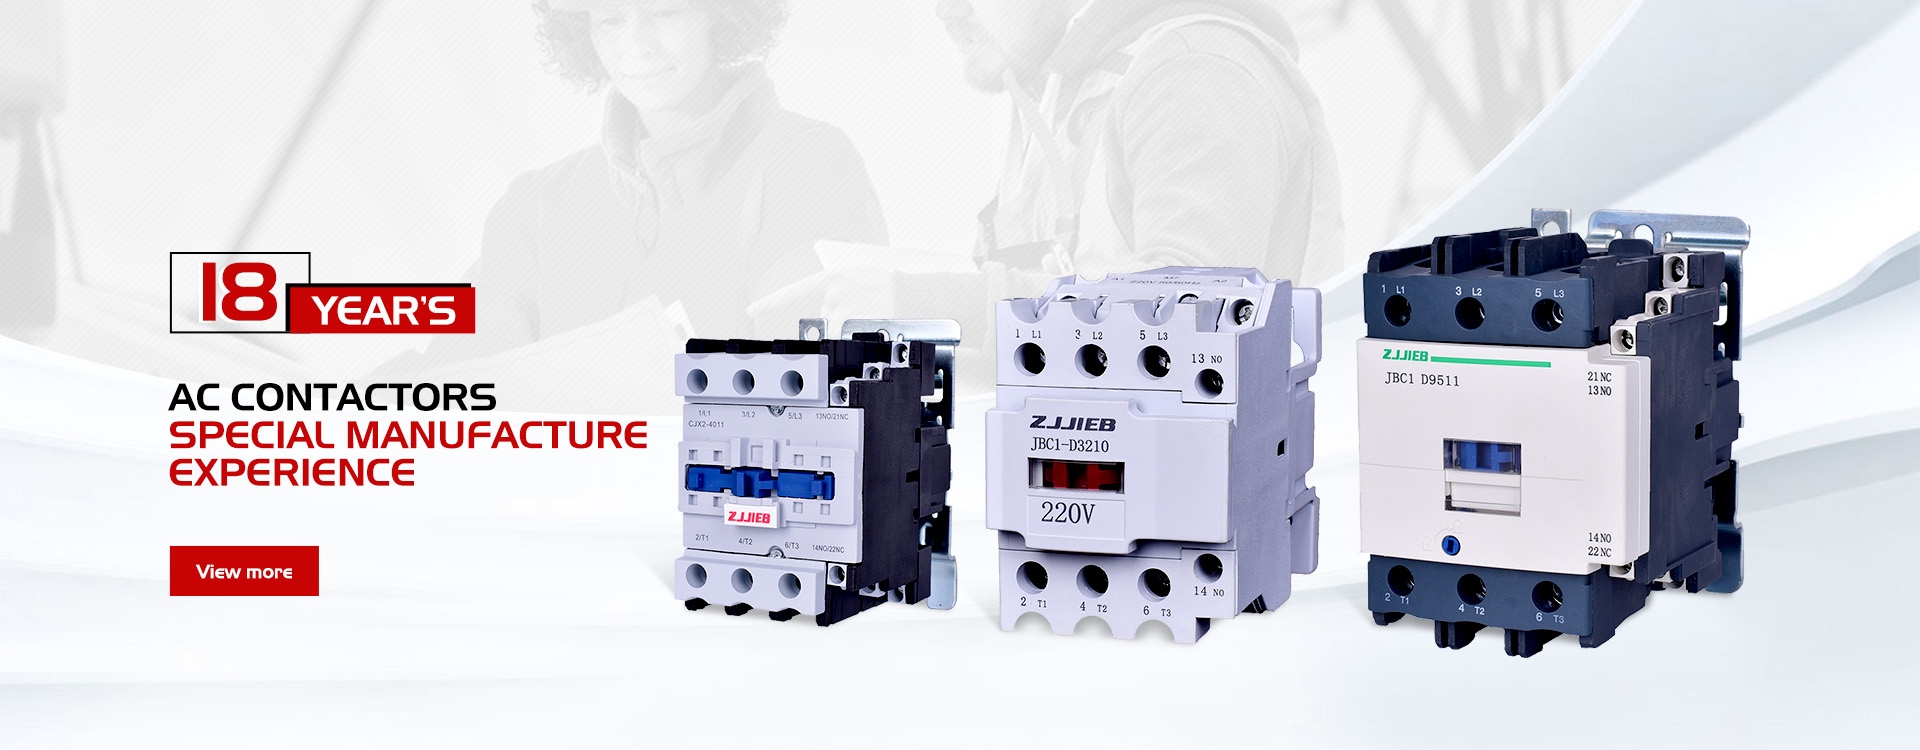 iparọ CONTACTOR